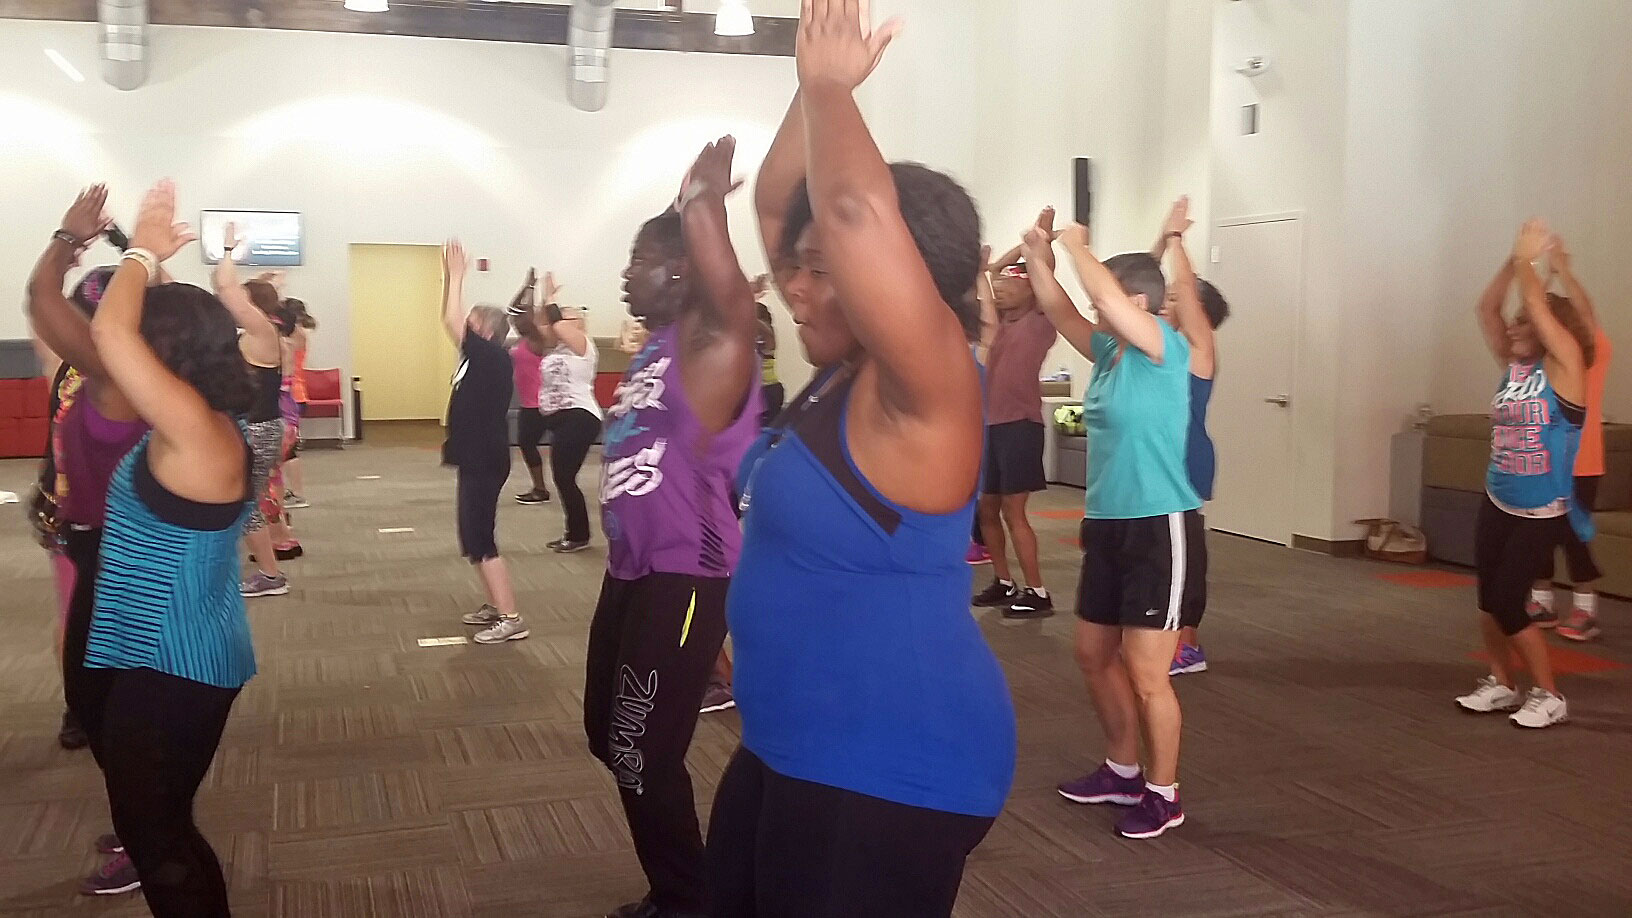 Participants sweat it out during a two-hour Zumbathon fundraiser in Takoma Park, Md. on Sunday, Aug. 28, 2016. (WTOP/Kathy Stewart)